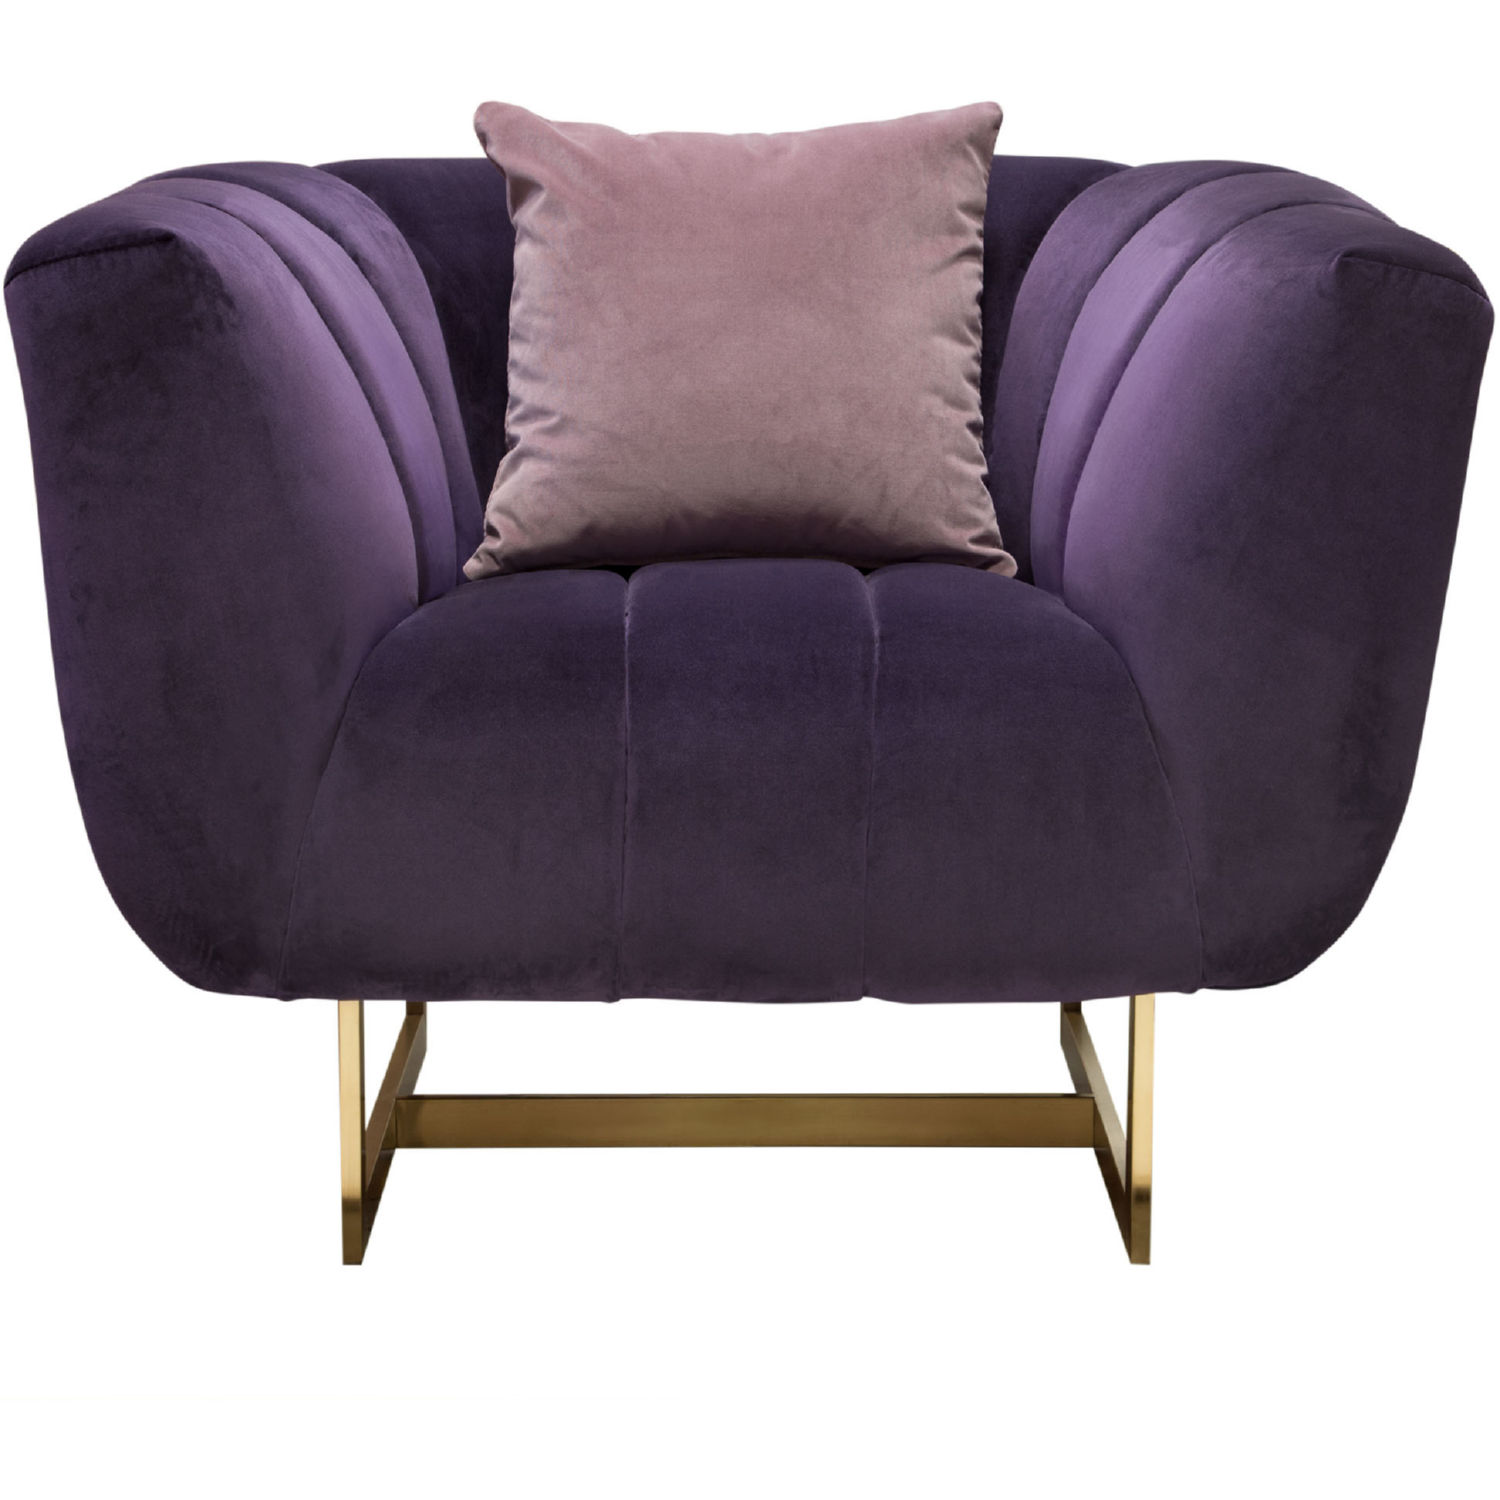 Excellent Venus Arm Chair In Channel Tufted Violet Purple Velvet On Gold Metal Base By Diamond Sofa Beatyapartments Chair Design Images Beatyapartmentscom